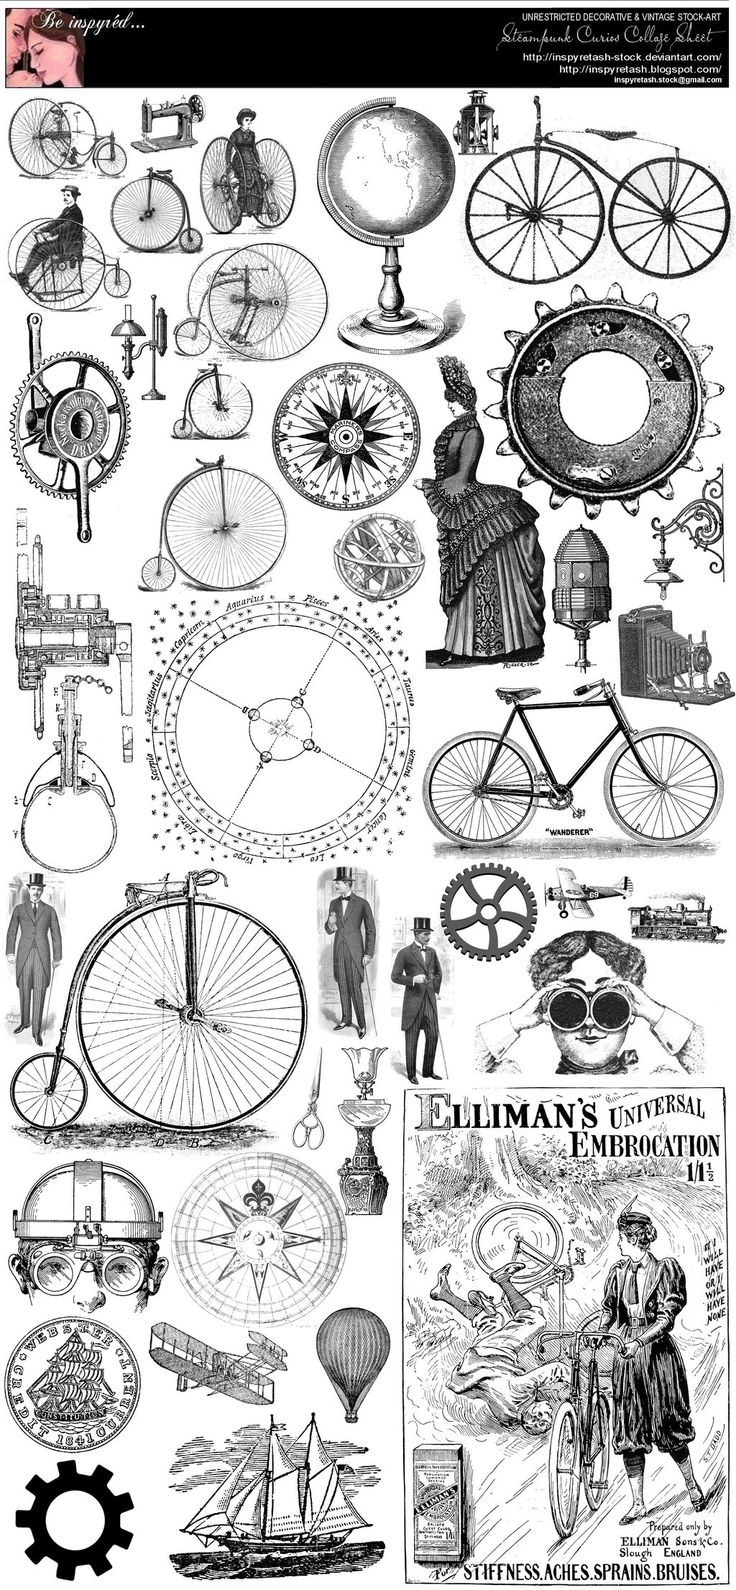 Steampunk Curios College Sheet by Beinspyred.deviantart.com on @deviantART